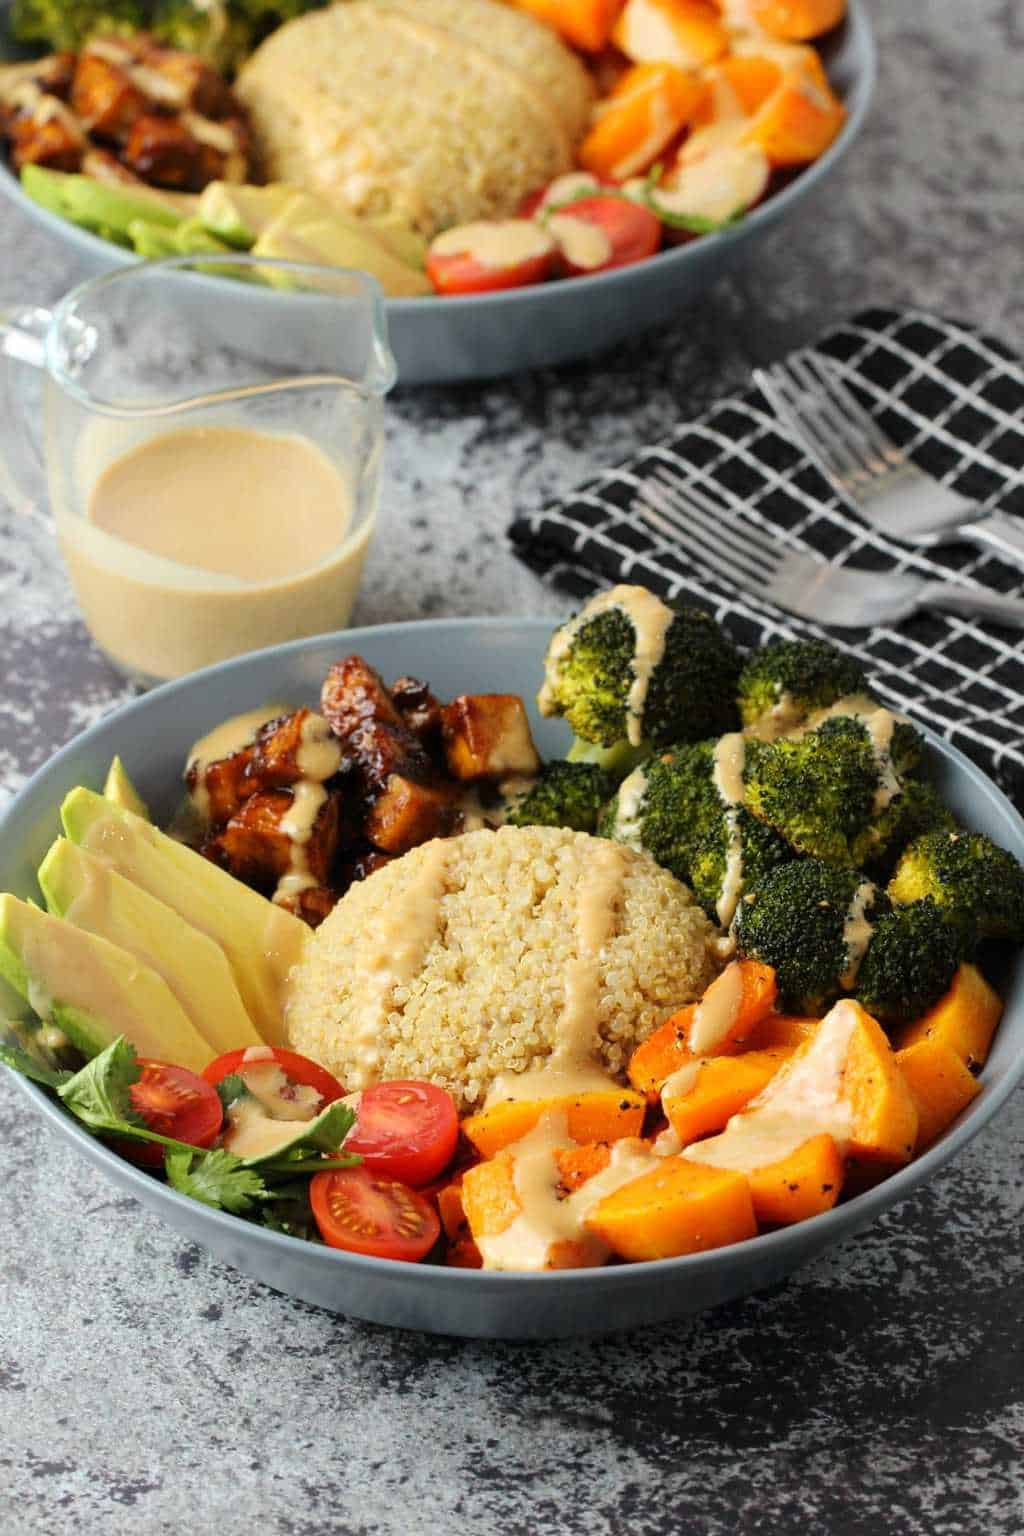 Vegan Buddha Bowl with quinoa, tofu and vegetables in a blue bowl.